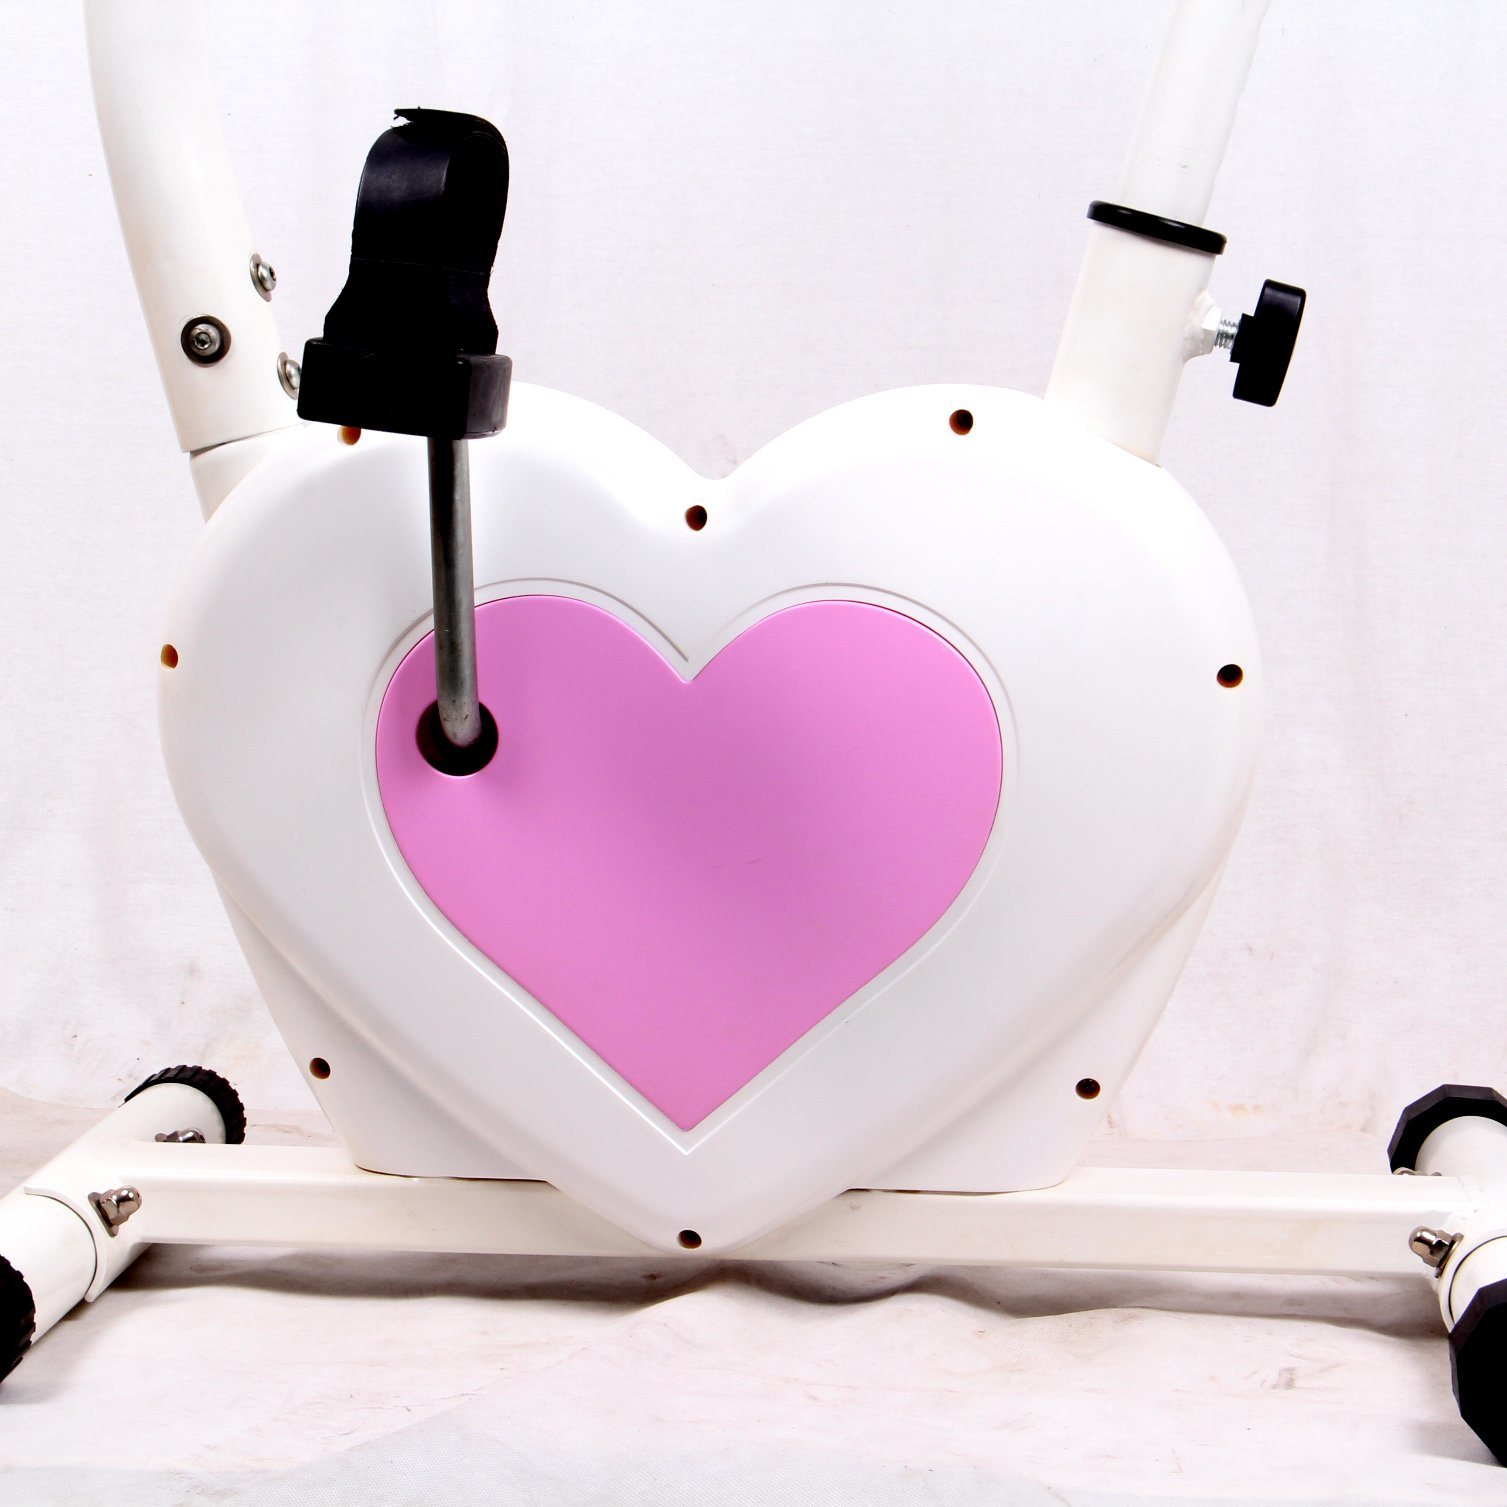 2017 New Design Sports Machine Heart-Shaped Exercise Bike Fitness Equipment